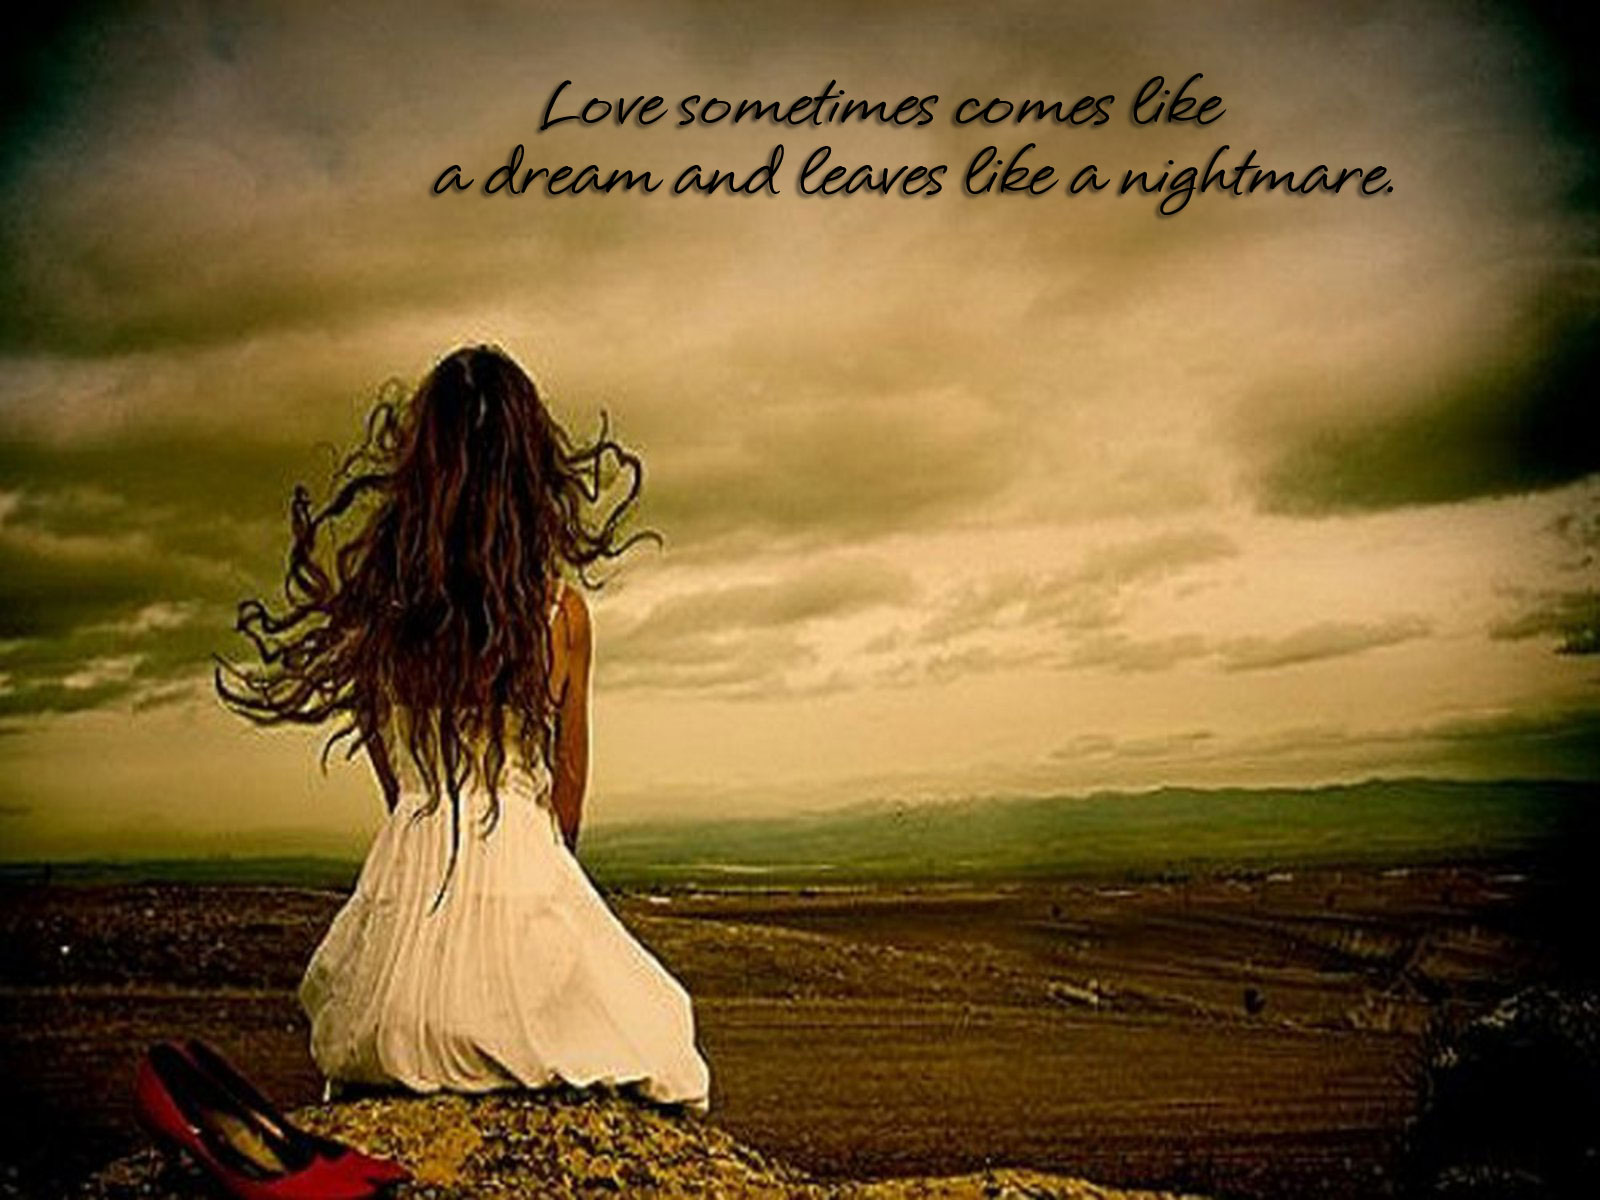 Real Love Quotes Wallpaper : Sad Love Quotes Wallpapers Love Wallpapers With Quotes ...